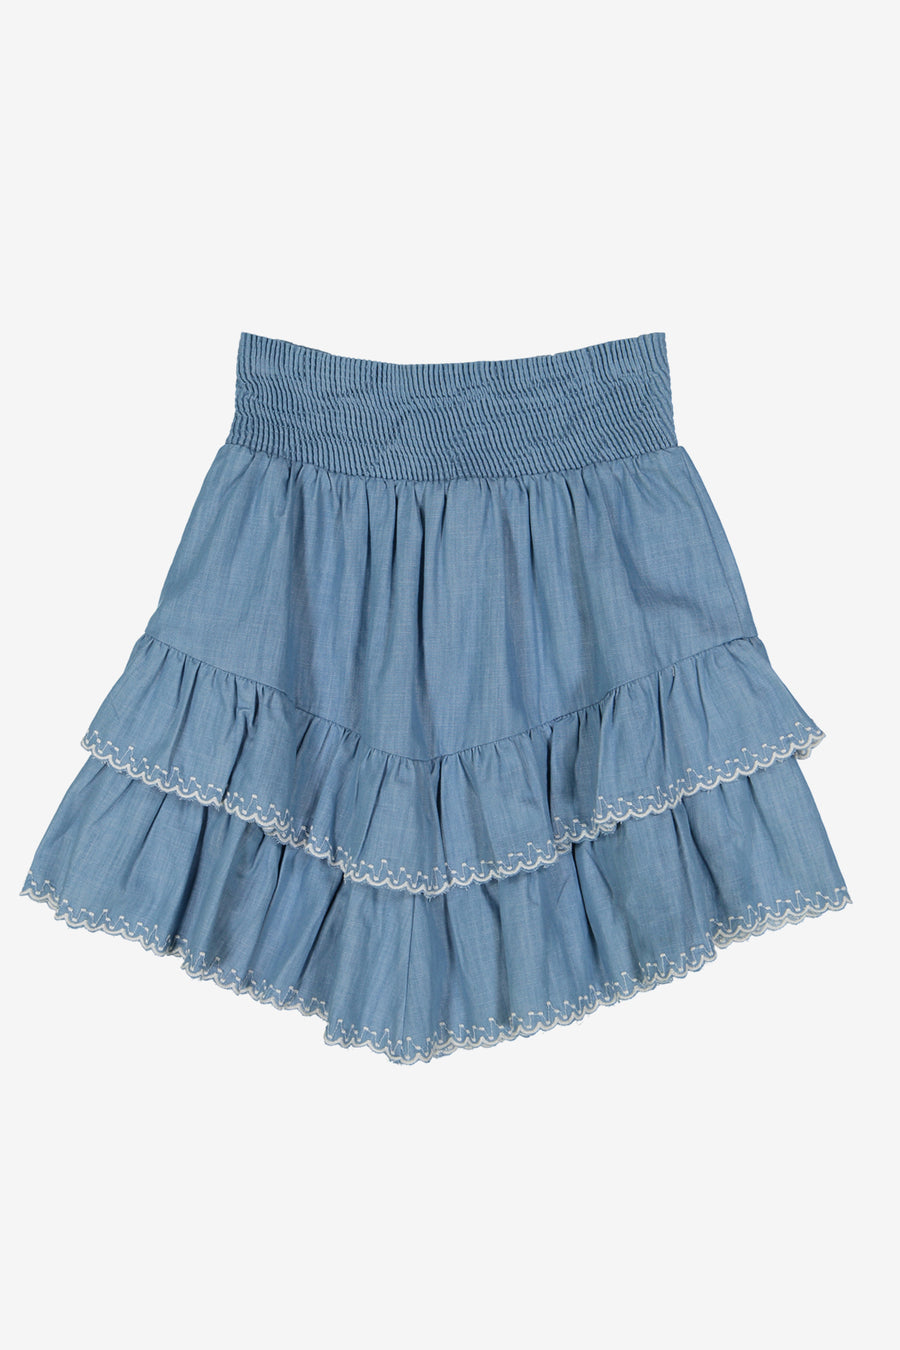 Les Coyotes de Paris Esti Chambray Skirt